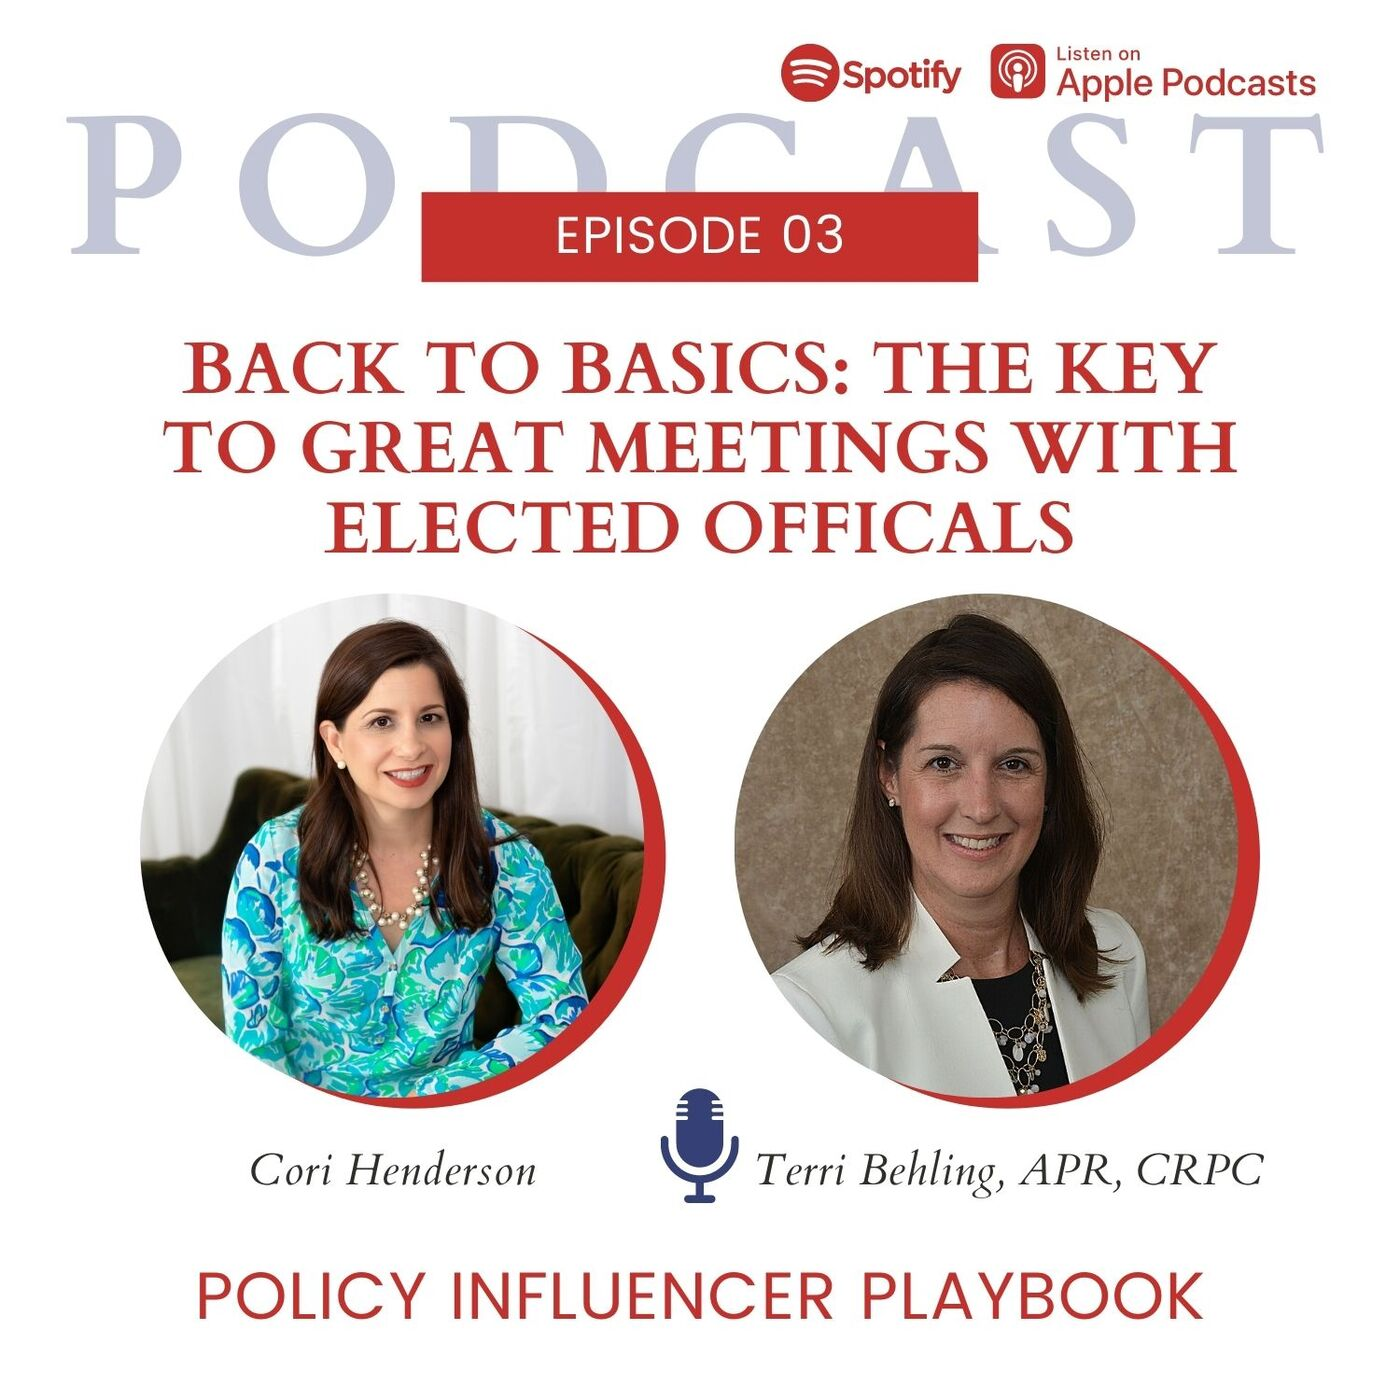 Back to Basics: The Key to Great Meetings with Elected Officials with Terri Behling